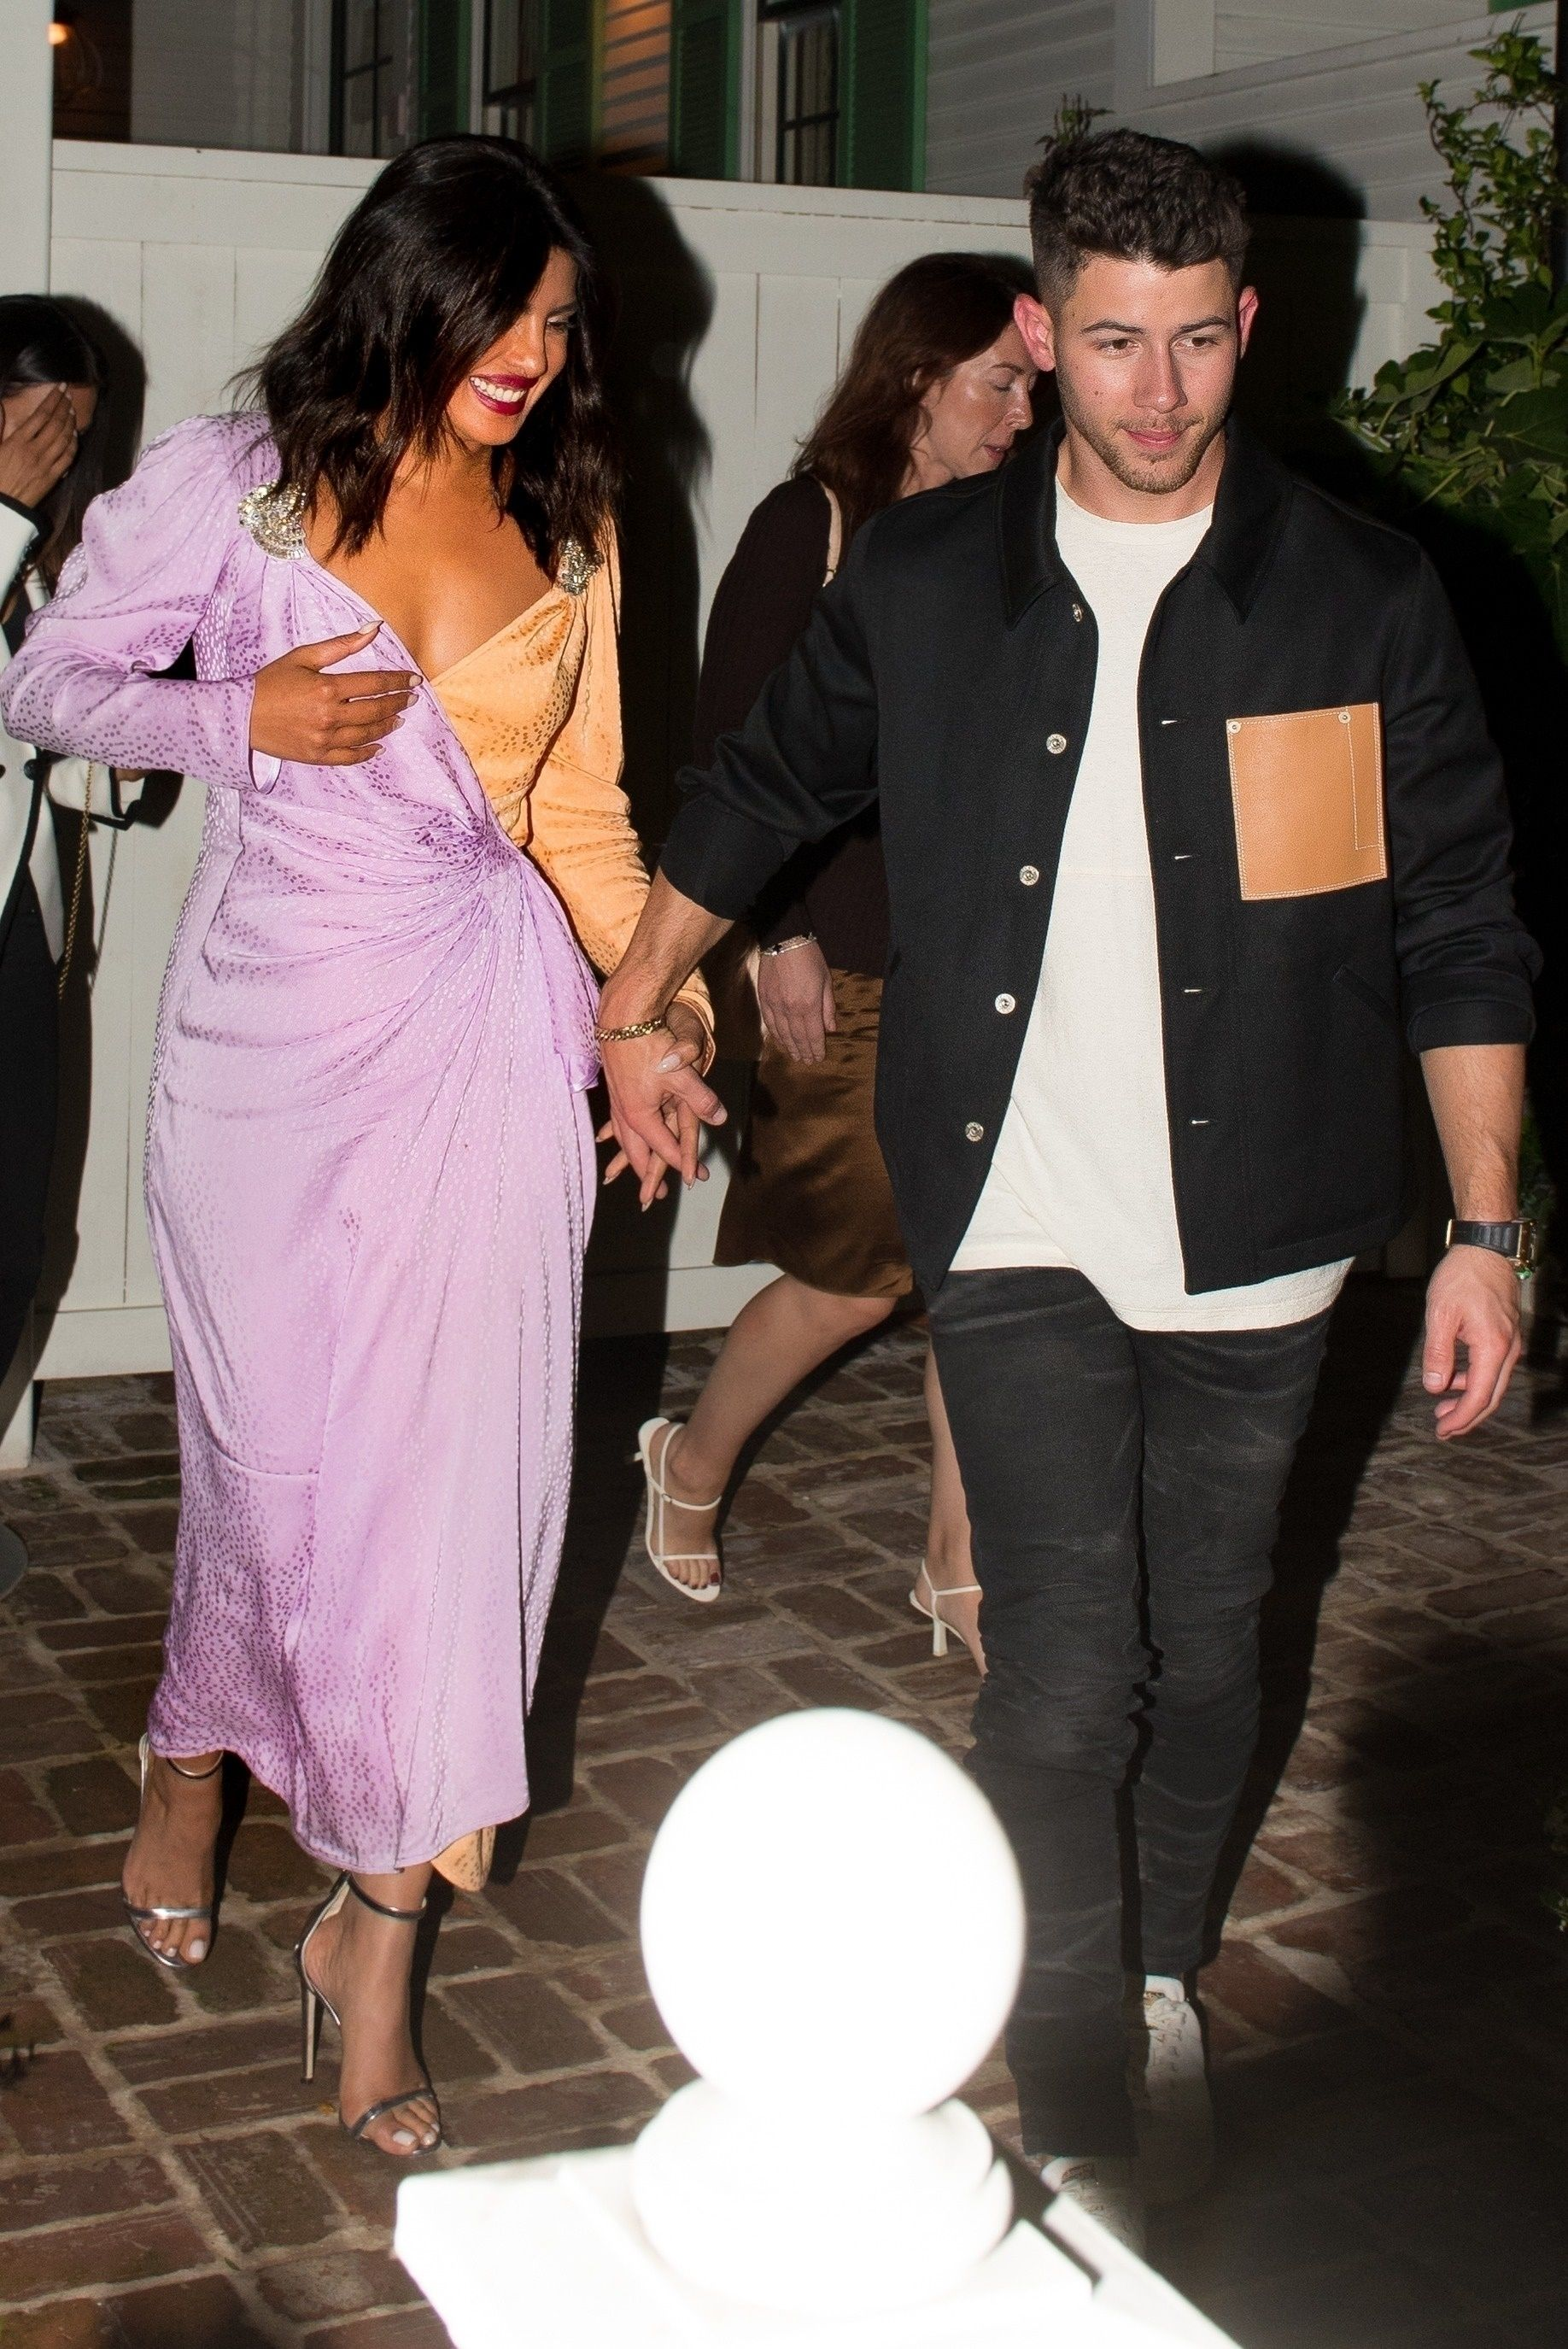 Priyanka Chopra and Nick Jonas' Date Outfits Matched in the Cheekiest Way